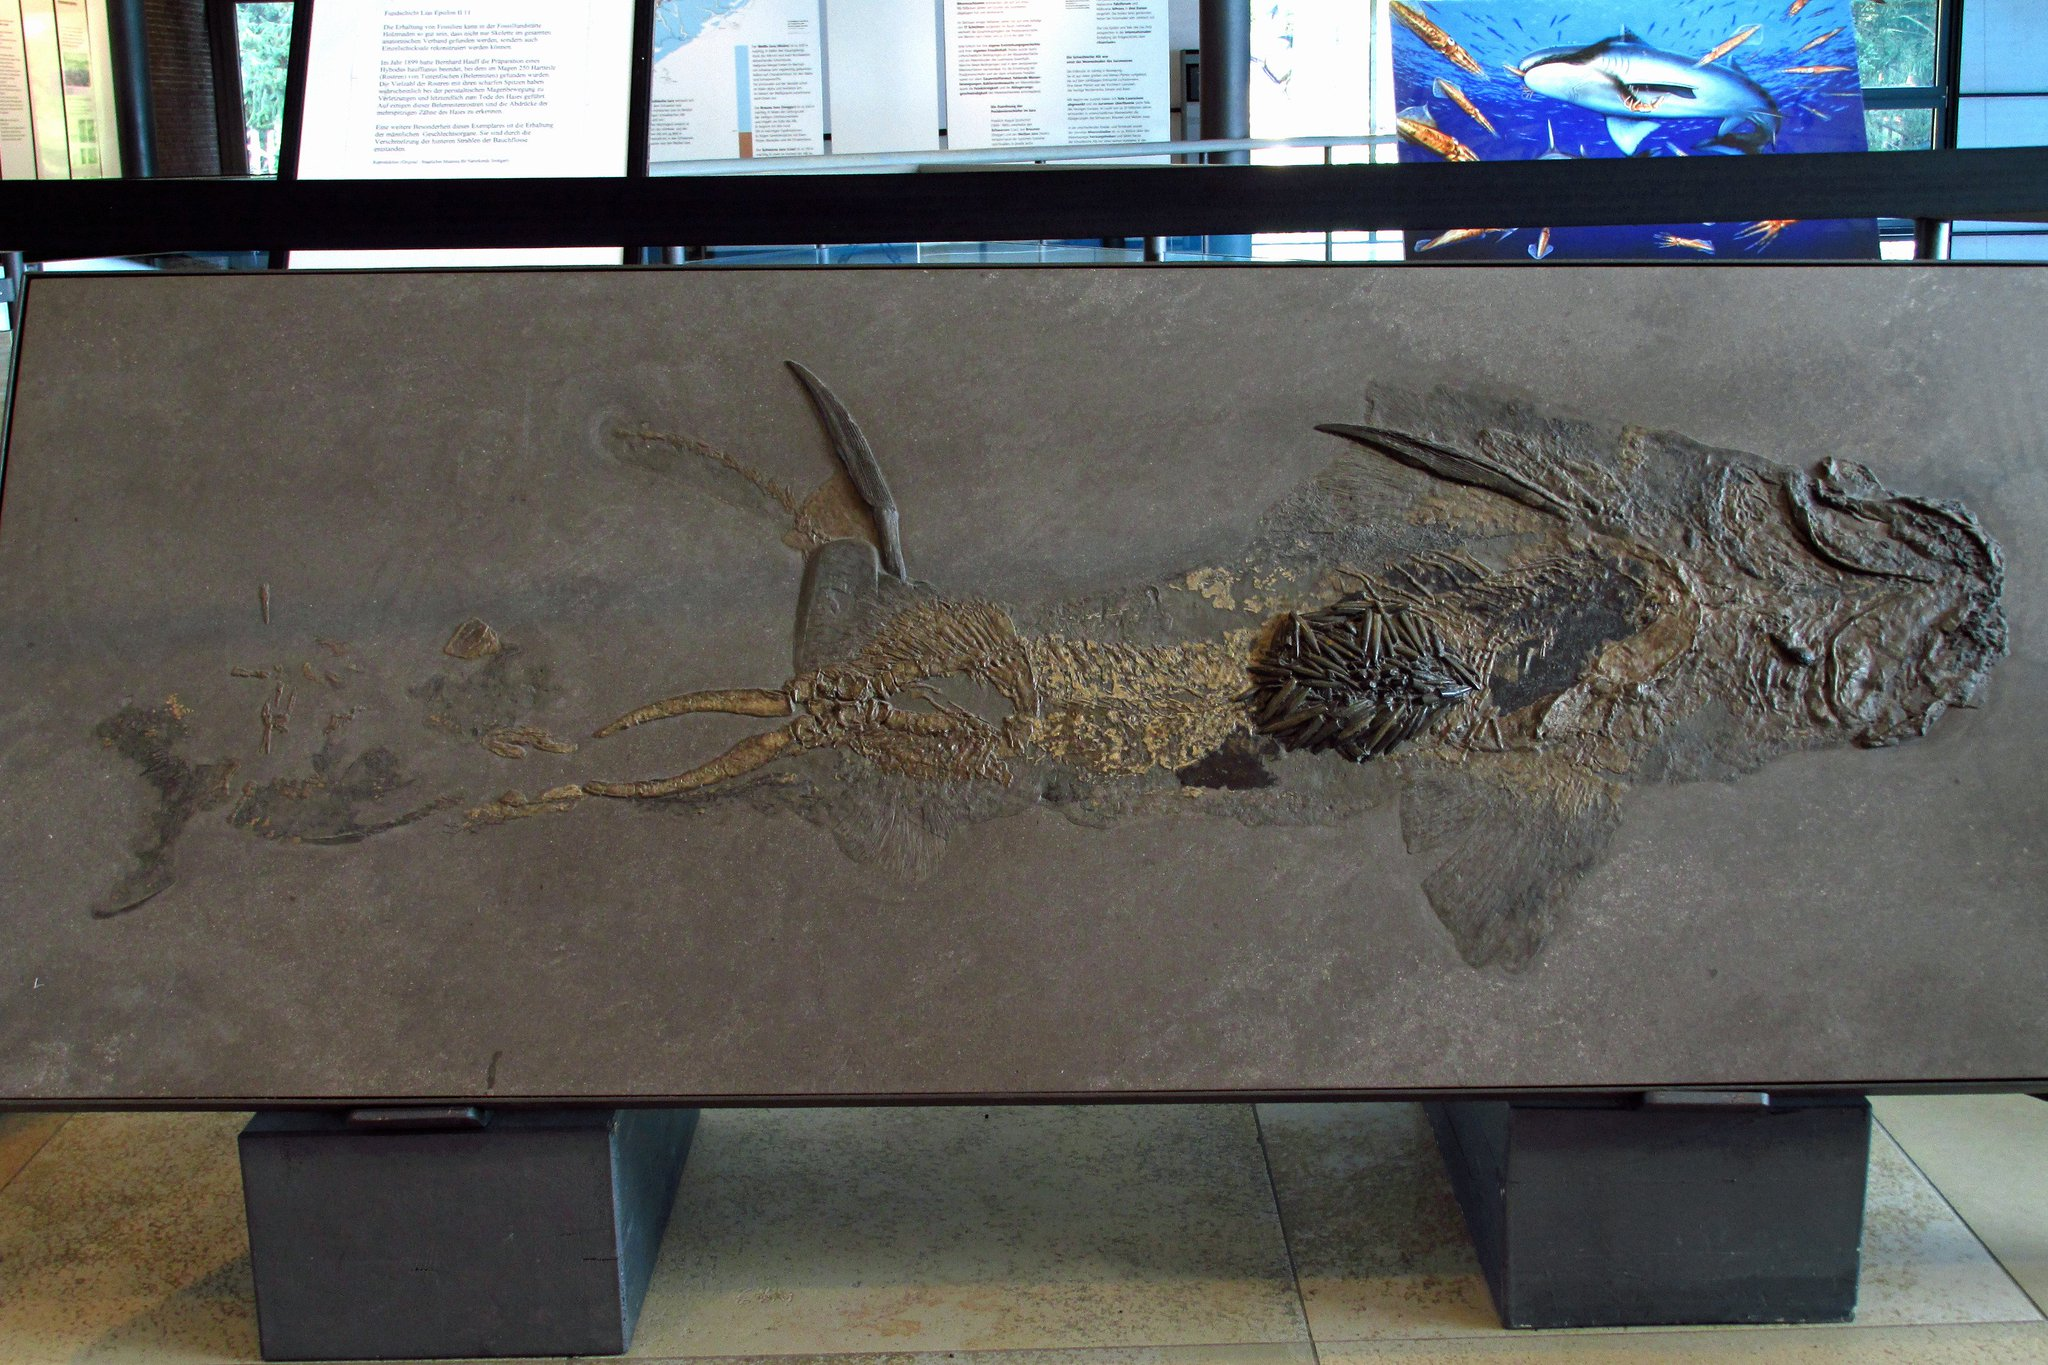 "Sven Sachs on Twitter: ""Skeleton of Hybodus hauffianus, a shark from the  Lower Jurassic Posidonia Shale of Holzmaden (Germany), containing  belemnites as stomach content. On display at the Urweltmuseum Hauff in  Holzmaden. #"